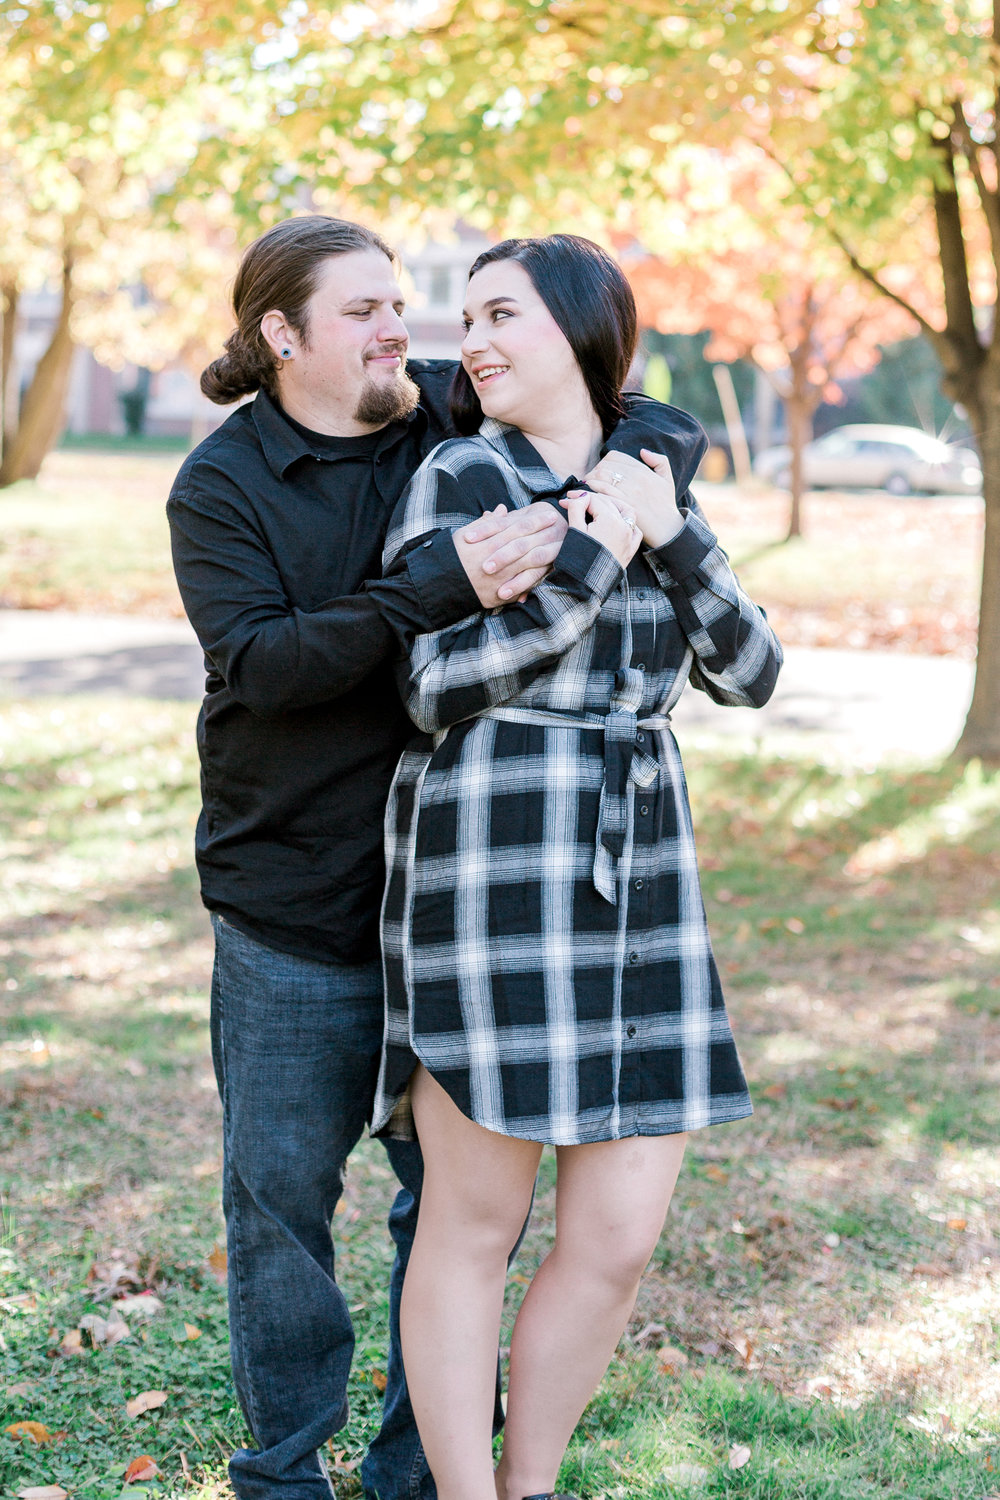 Collingswood New Jersey Fall Engagement Session Lehigh Valley wedding and lifestyle photographer Lytle Photo Co (49 of 95).jpg